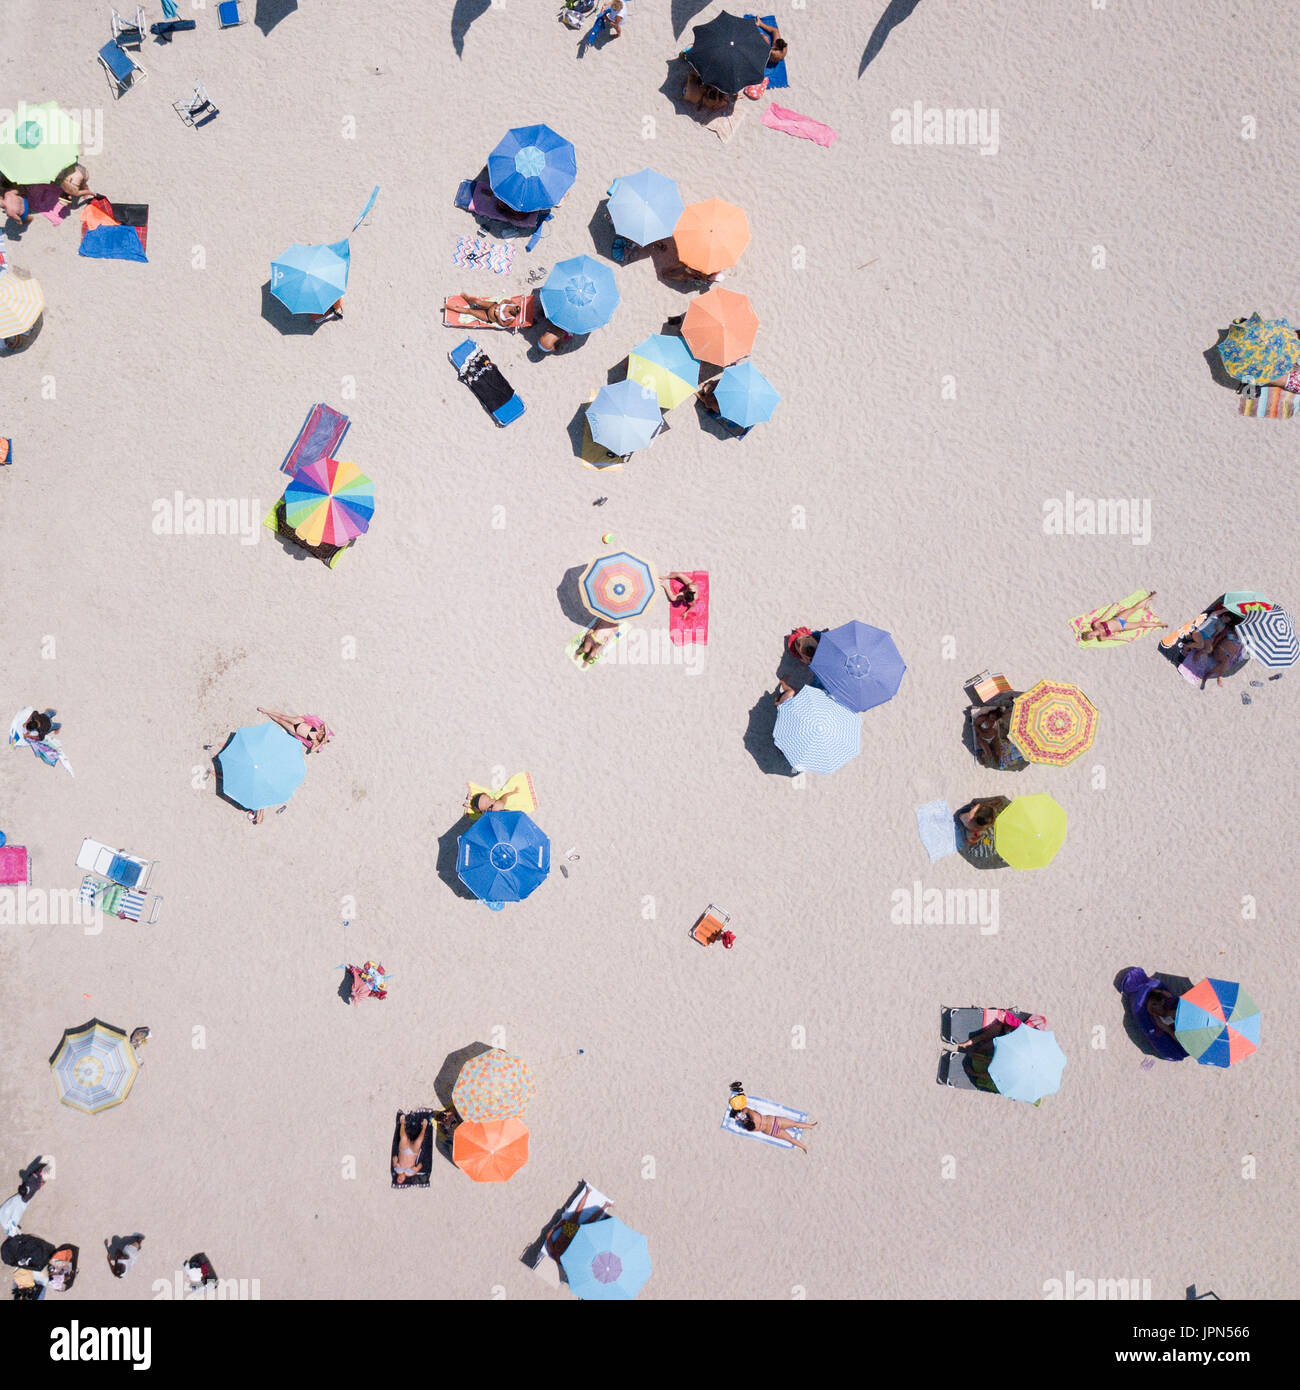 SARDINIA, ITALY, 10 JULY 2017, Aerial view of the amazing beach with colorful umbrella and people who swim. 10 JULY - Stock Image